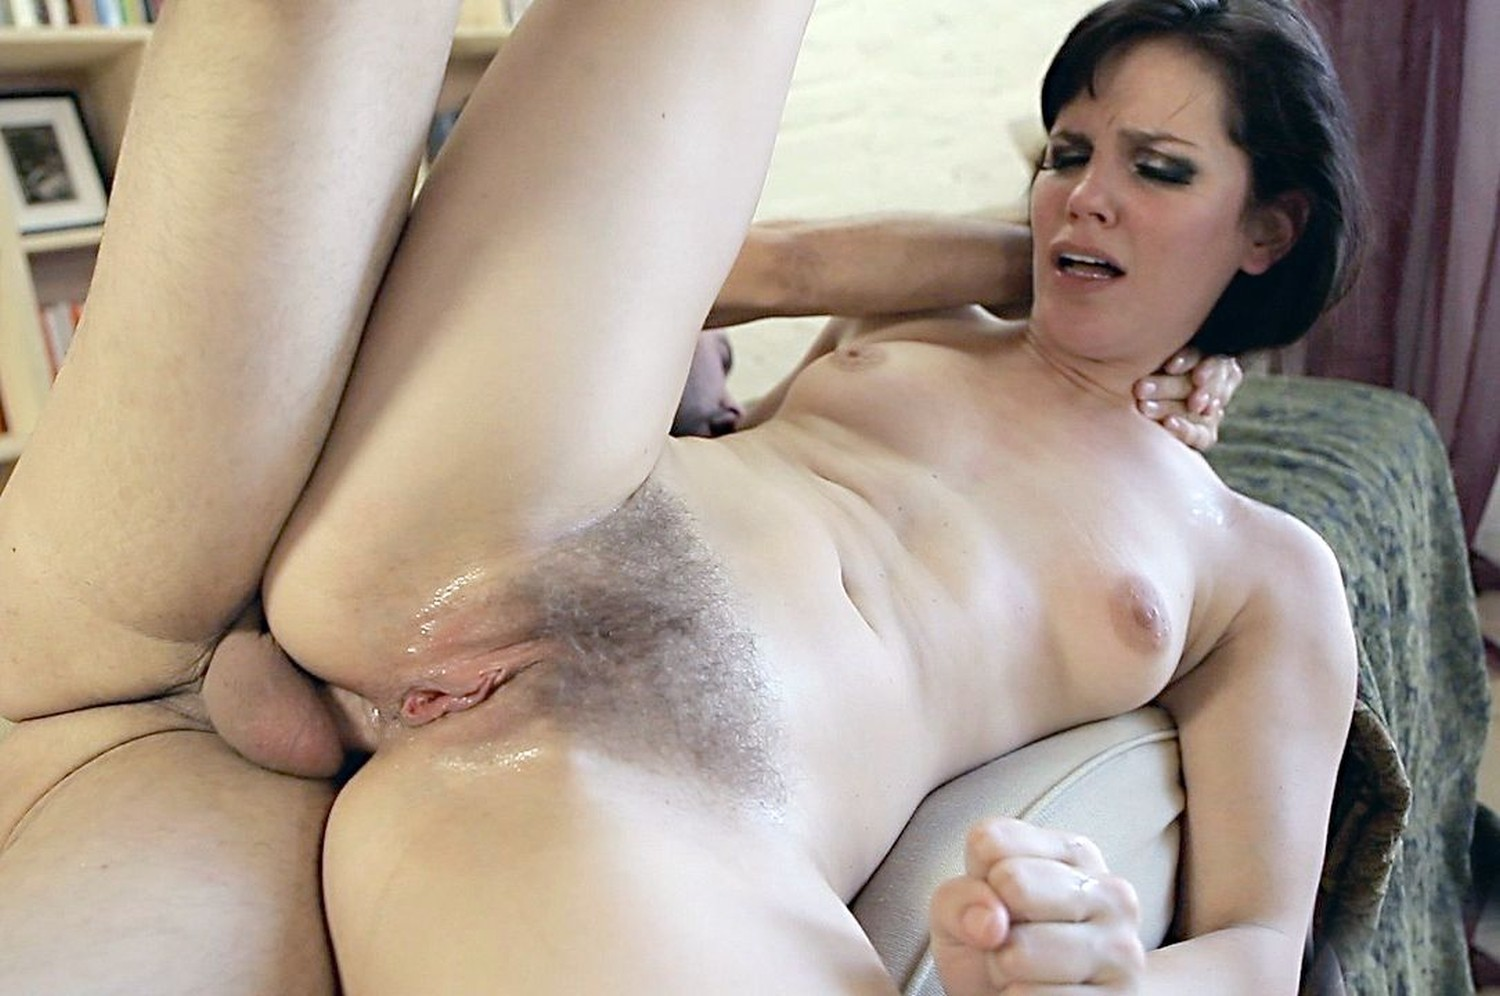 caught-mature-hairy-anal-sluts-video-hot-amateur